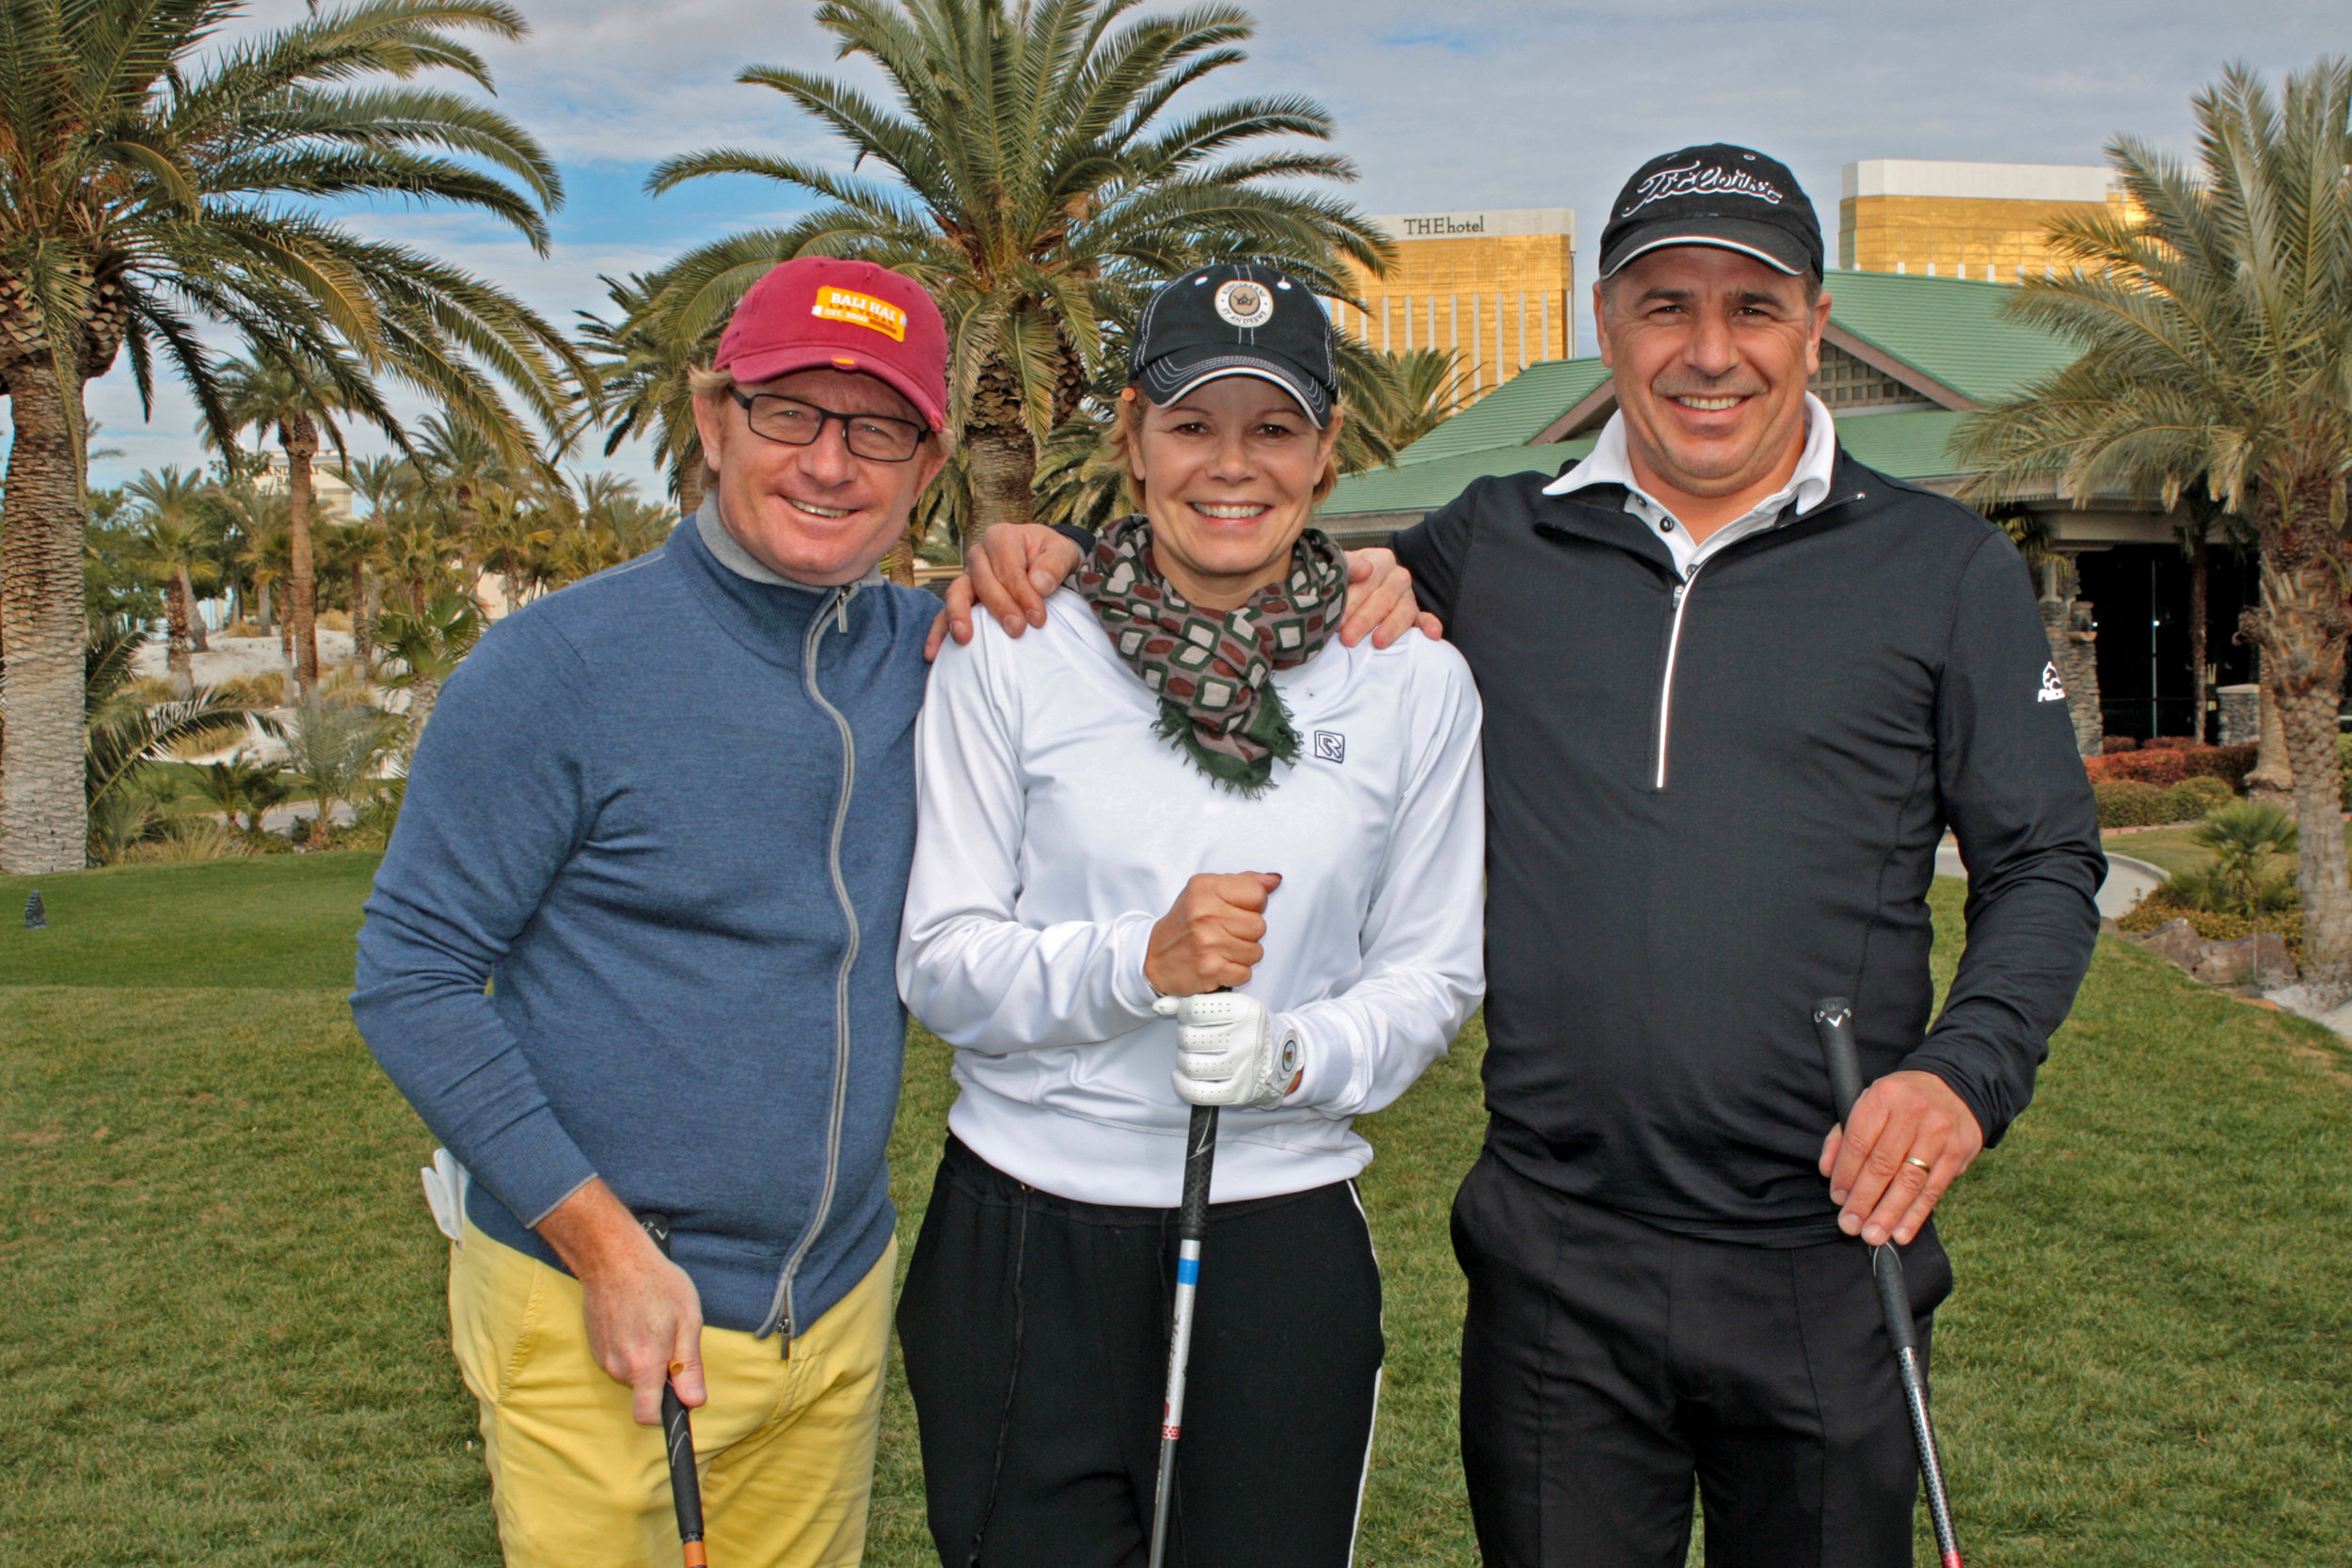 Golf Outings - Corporate & Charity events, our specialty! Print onsite custom products. Groups of any size. Action & candid shots along with foursomes. Based in Colorado & Las Vegas but we have covered events all over the country.